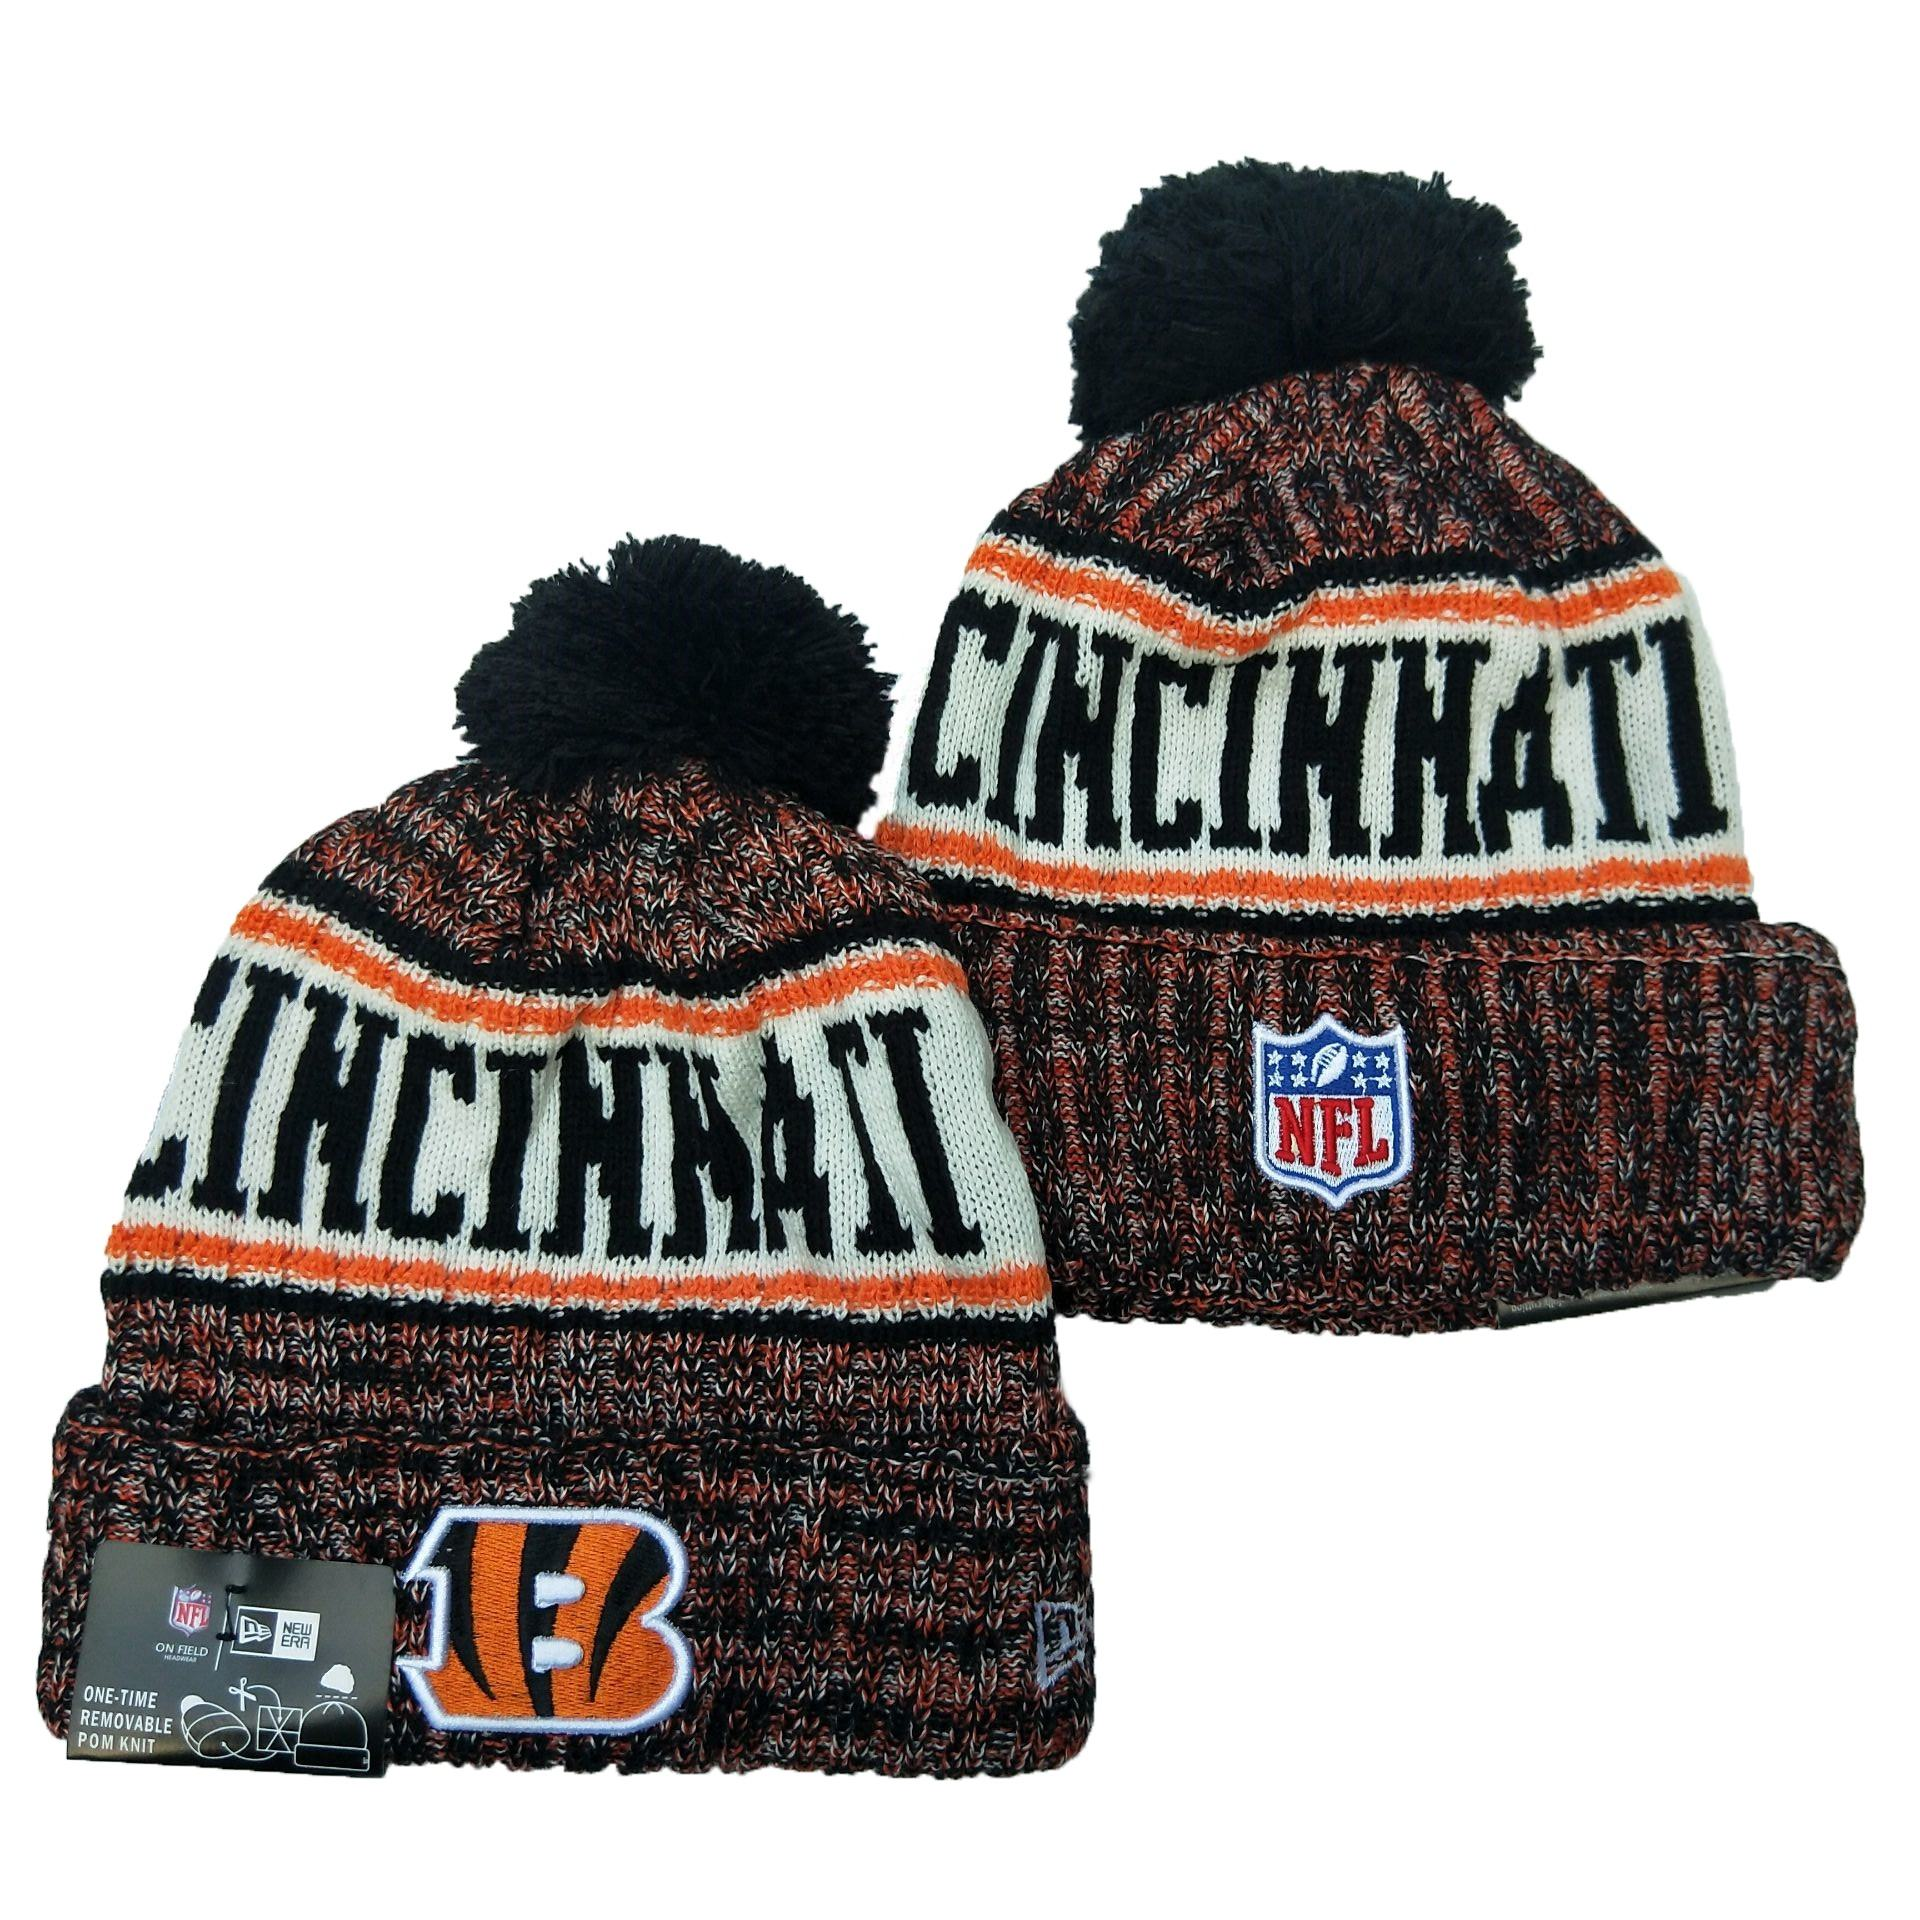 NFL CINCINNATI BENGAL Sports Winter Knitting Ca ps Knitted Beanies America football team NFL winter hat 3d embroidery beanie